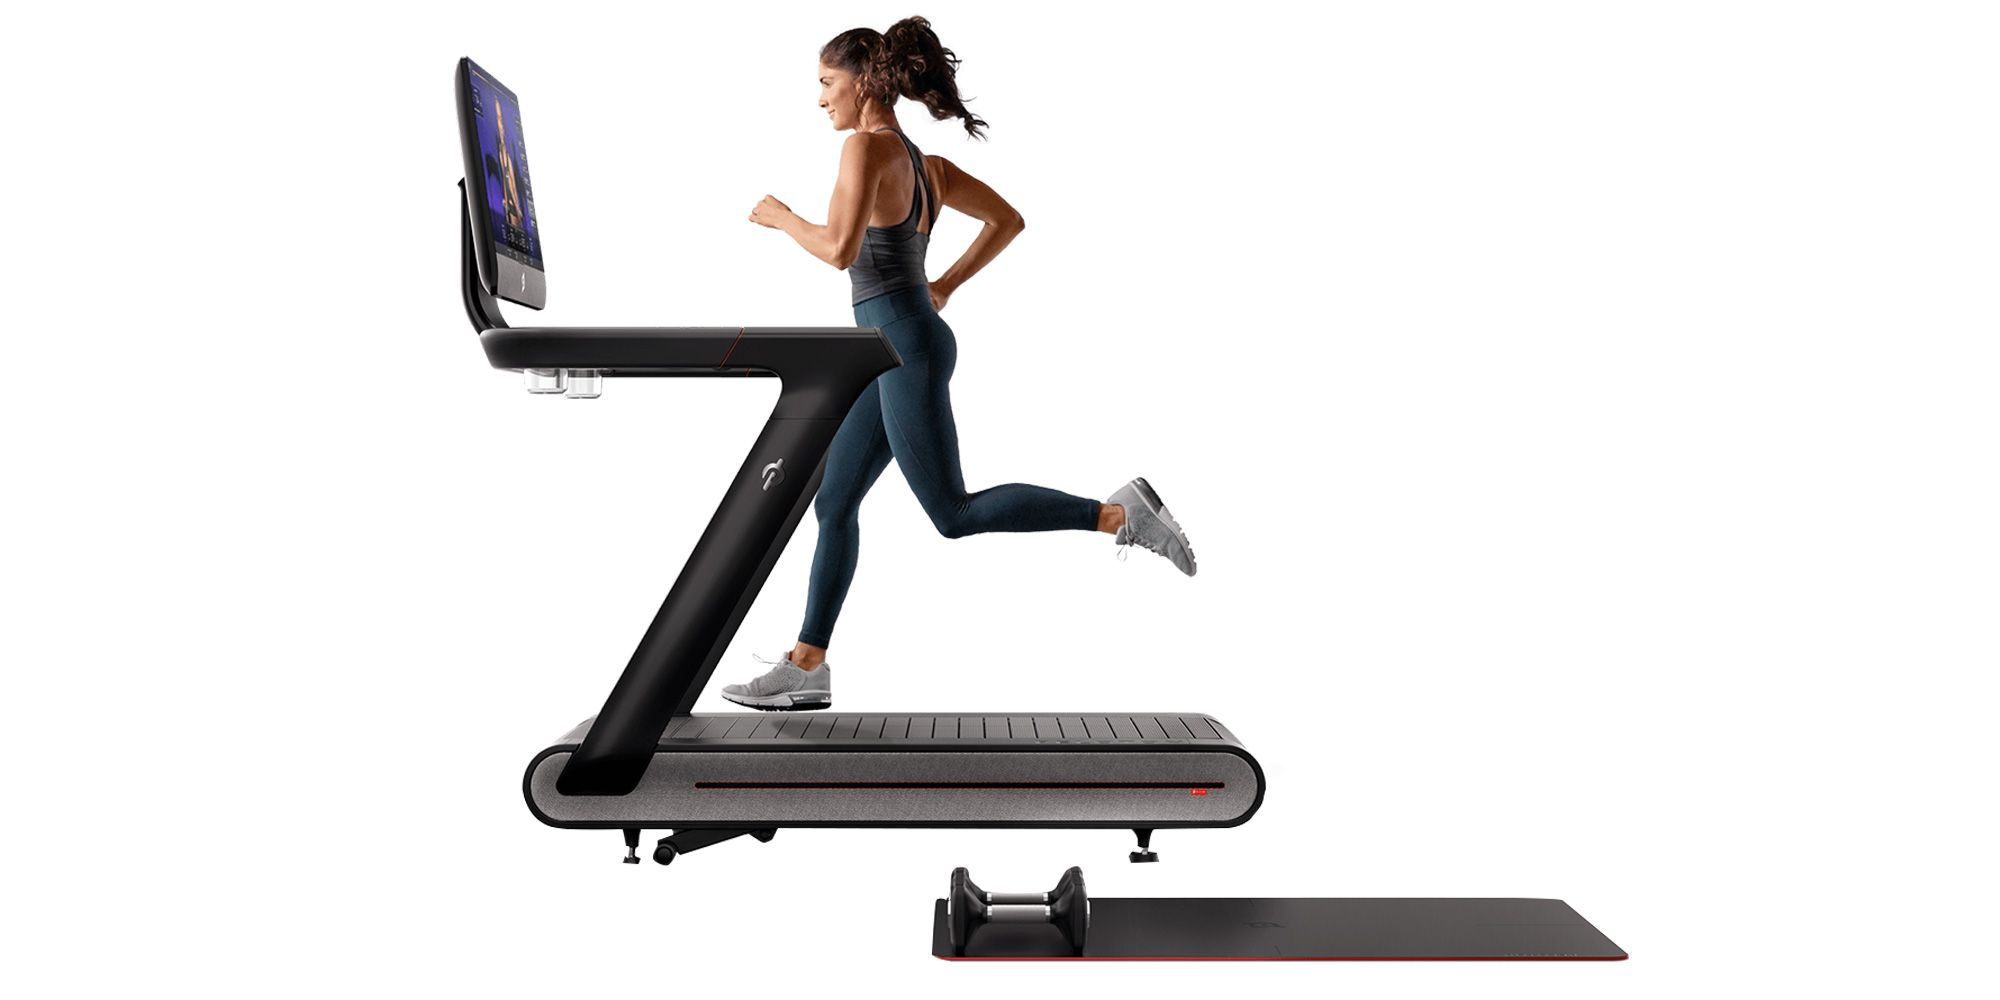 12 Pieces Of Gear That Will Make Your Home Gym Epic e16df5320761